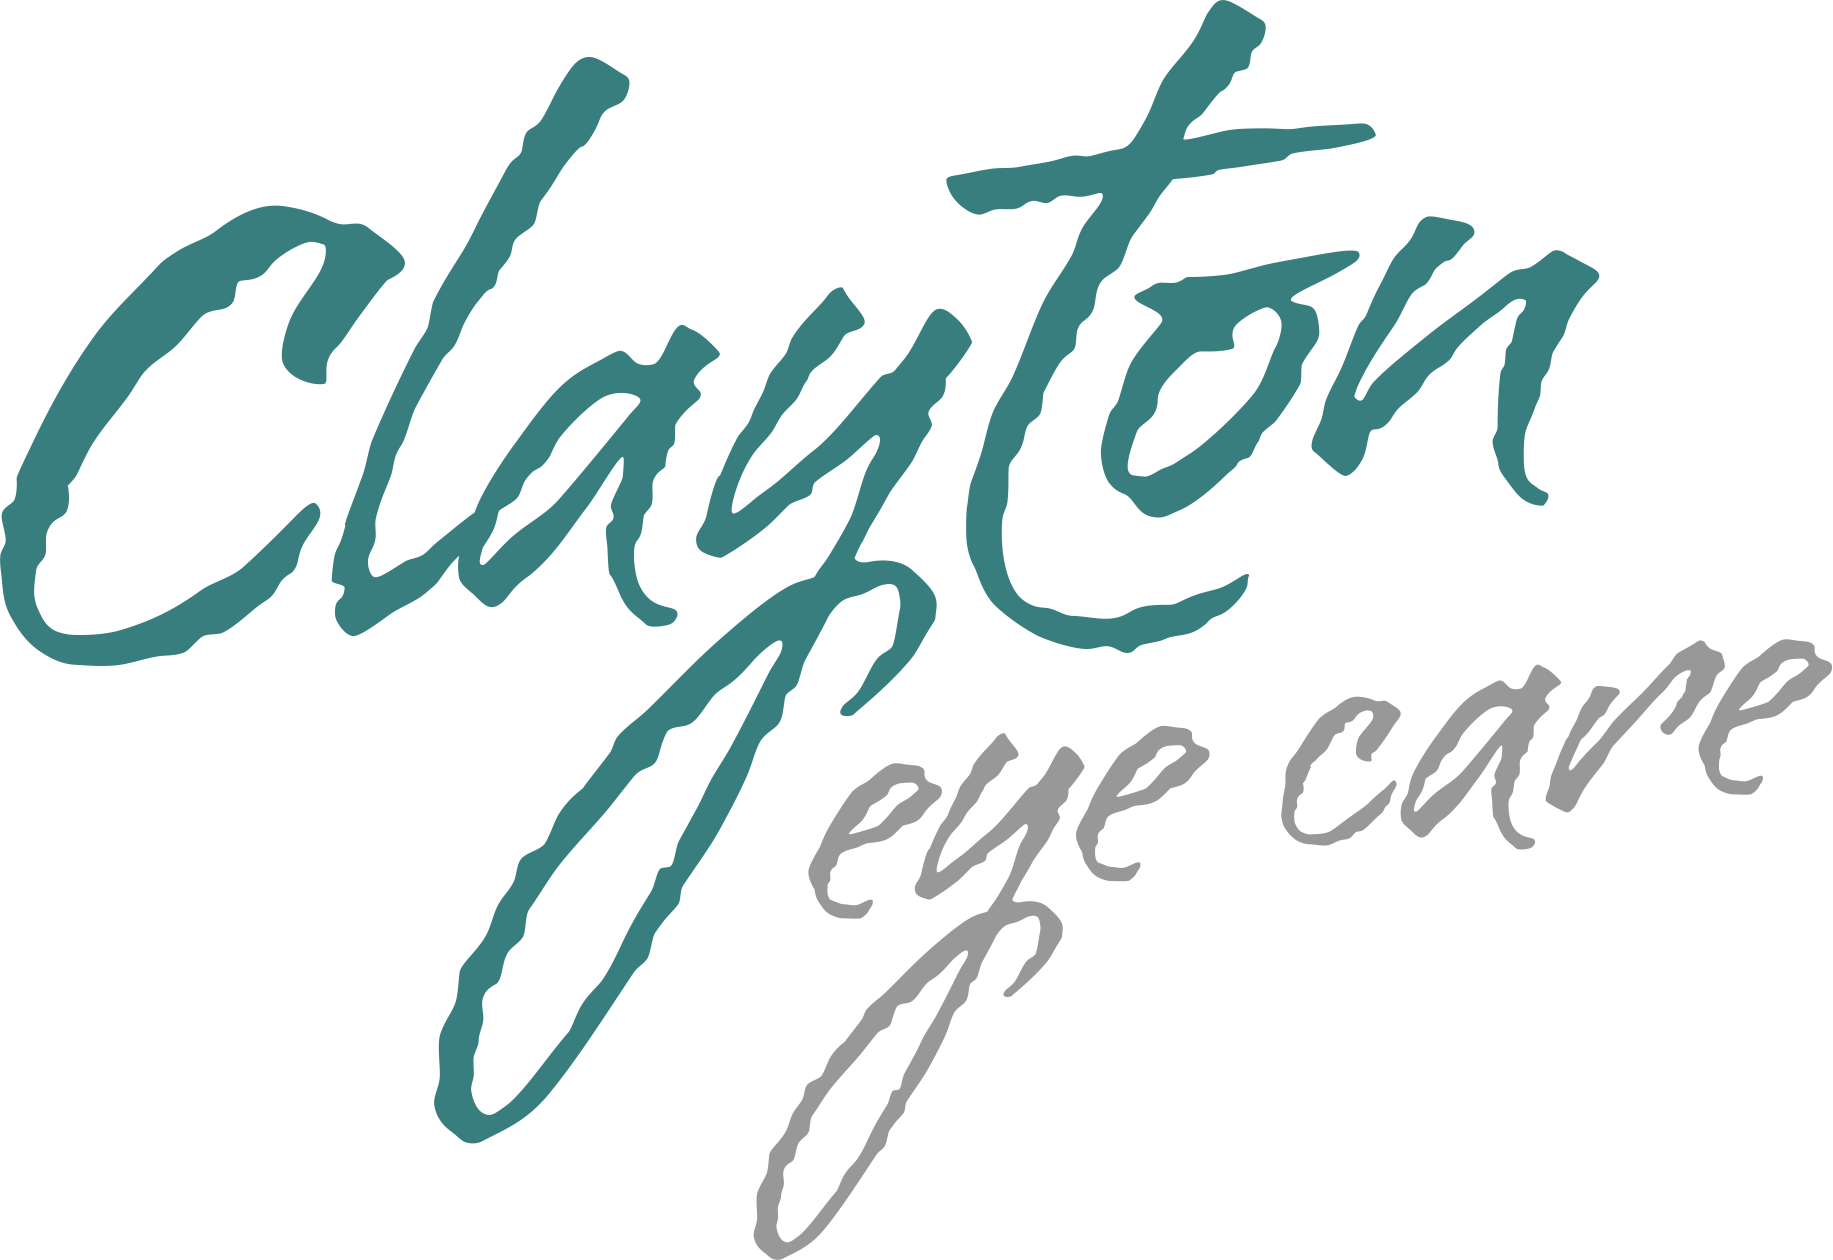 Clayton Eye Care